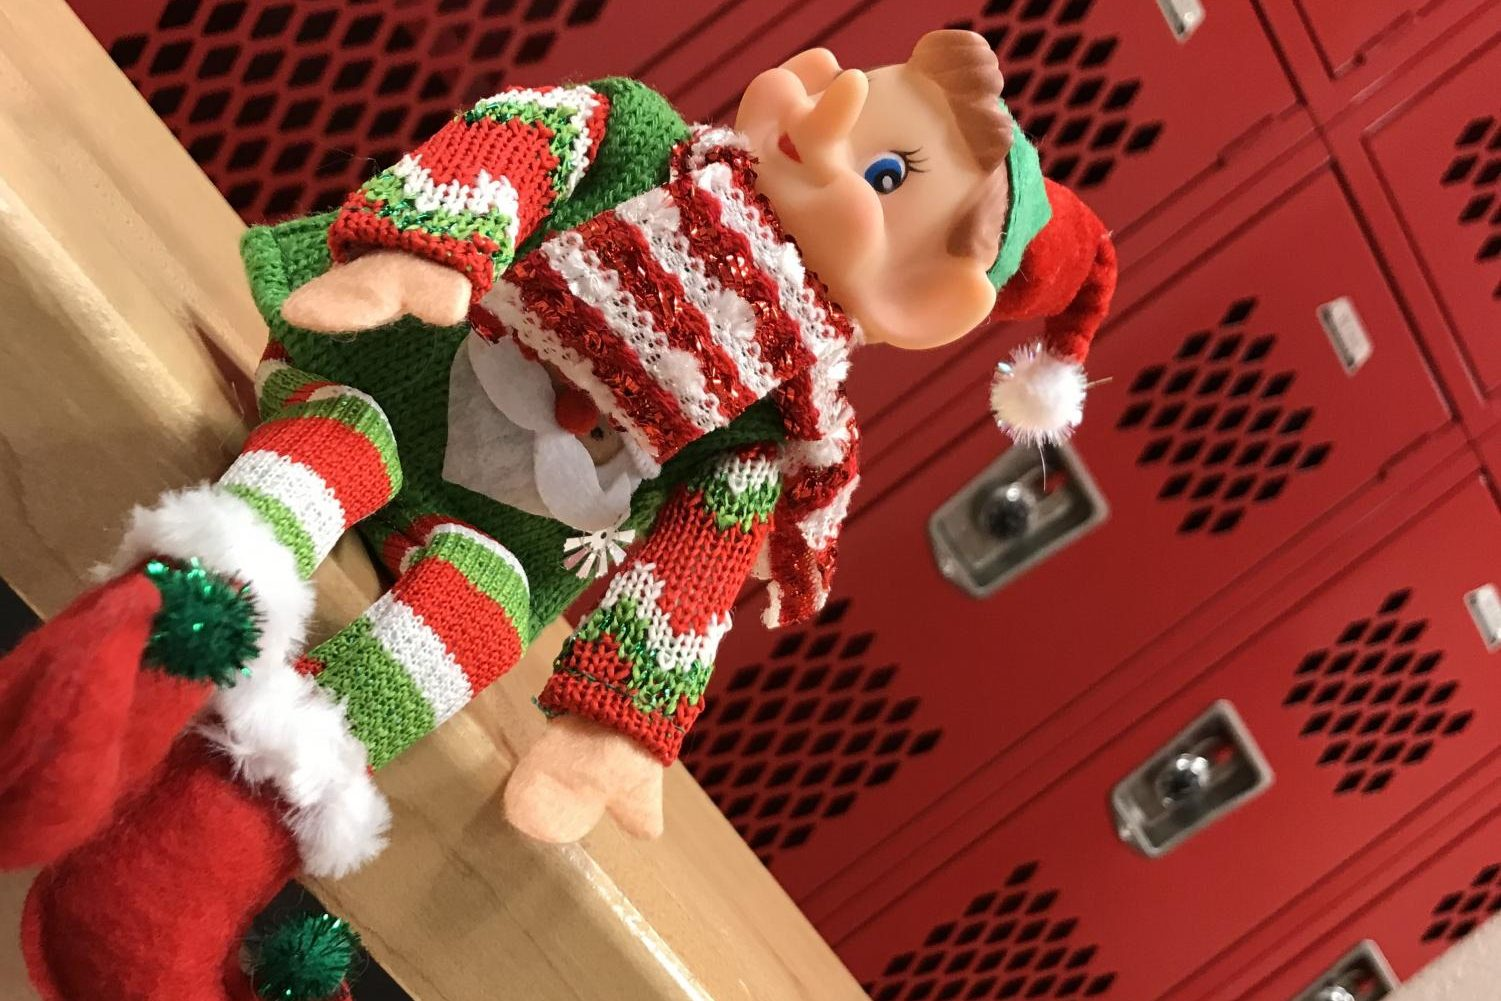 Where is Elfie today?